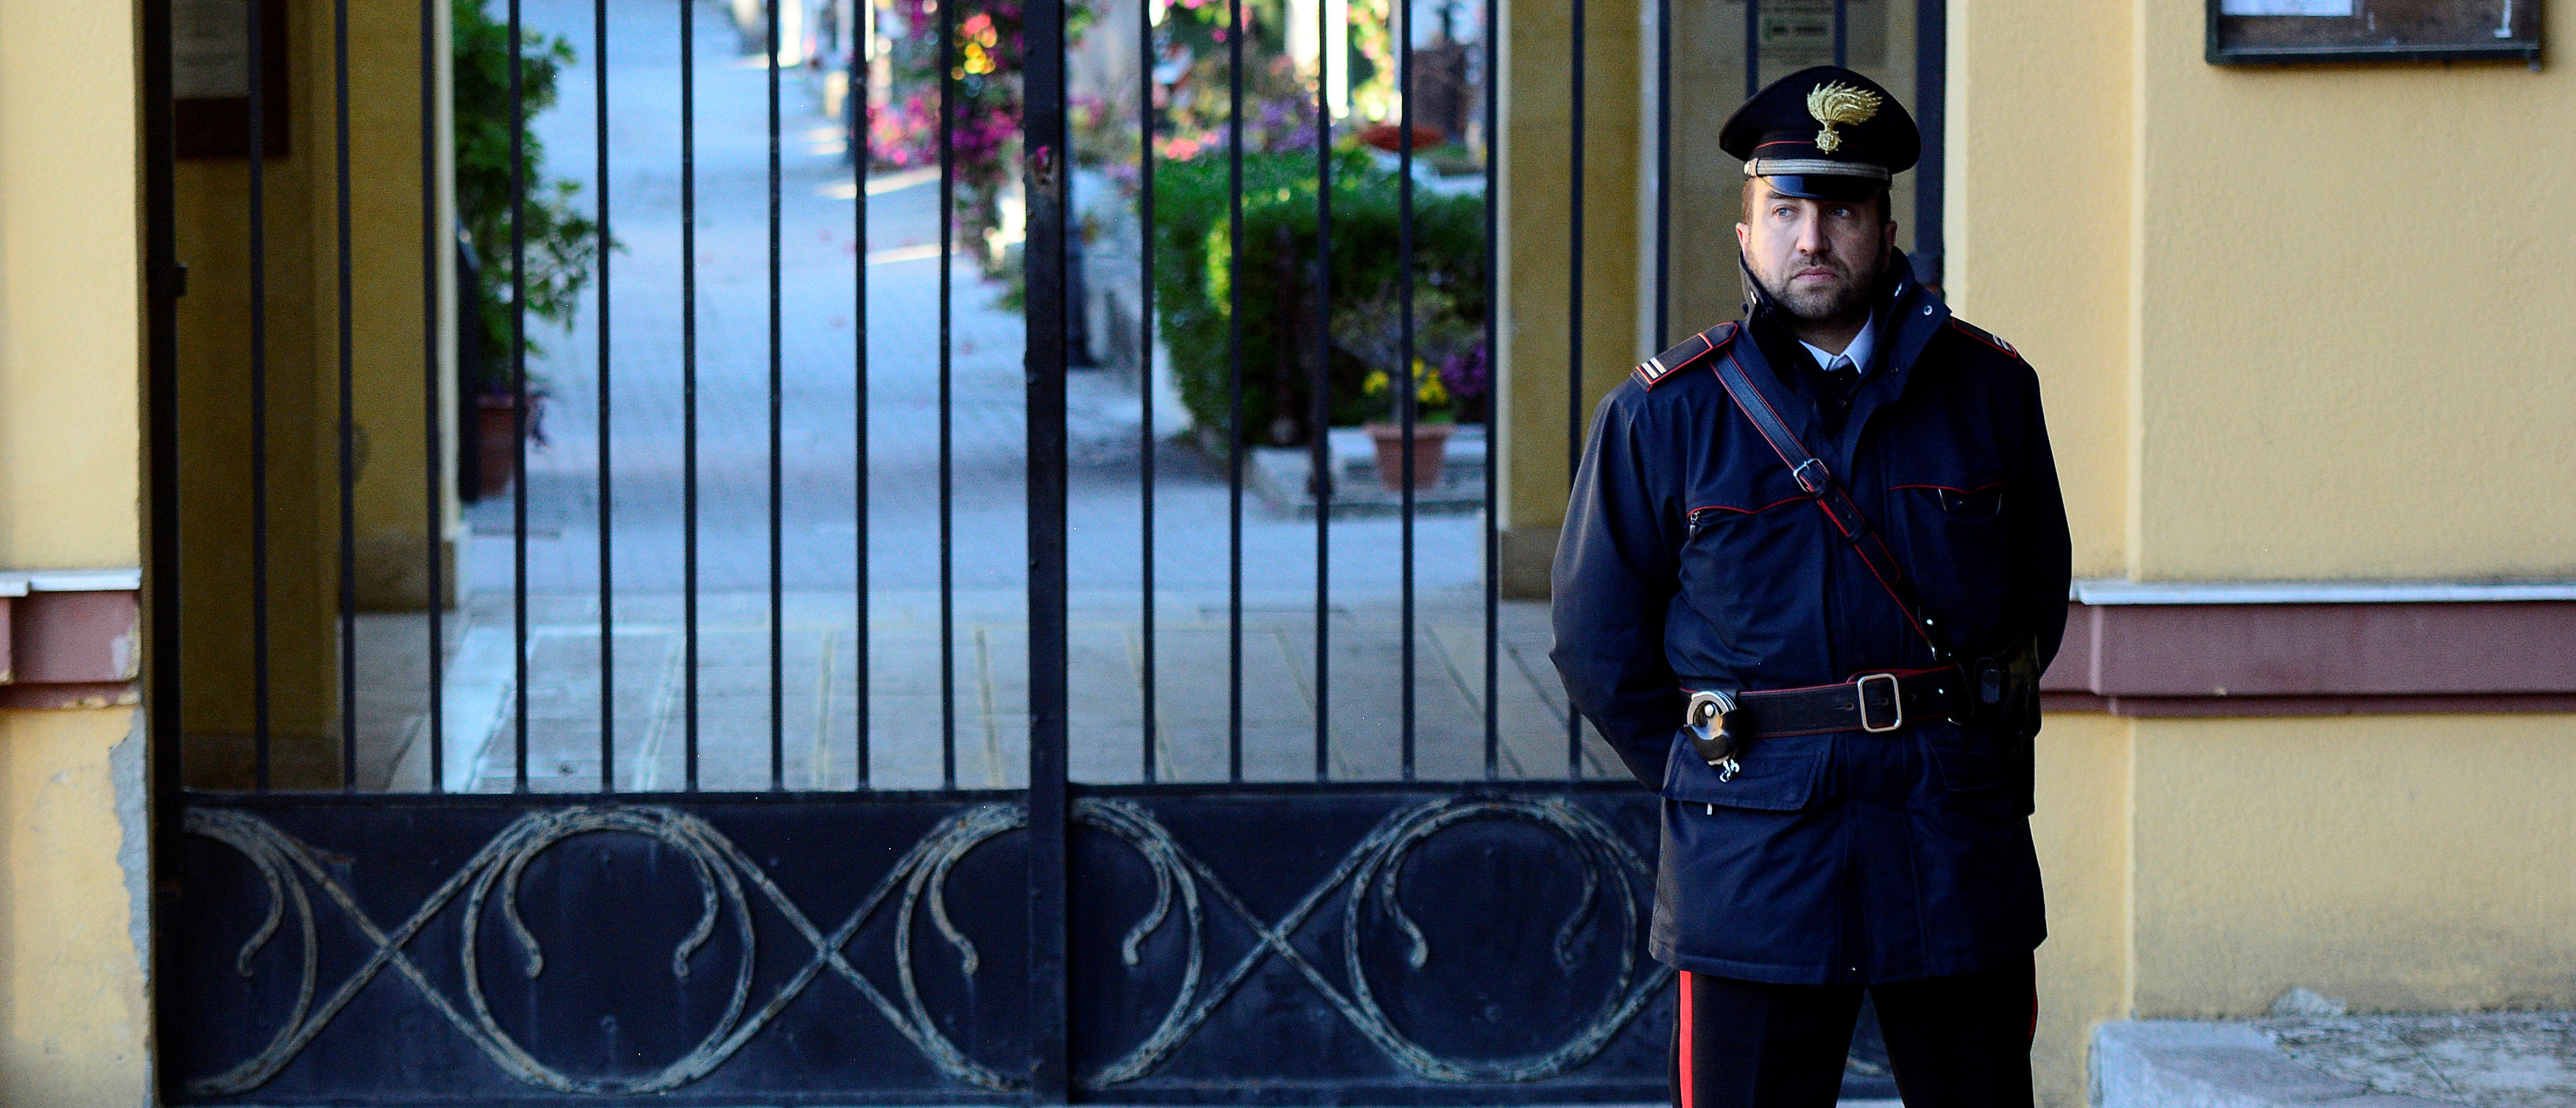 An Italian Carabinieri police officer patrols outside the cemetery in Corleone, Italy November 22, 2017. REUTERS/Guglielmo Mangiapane